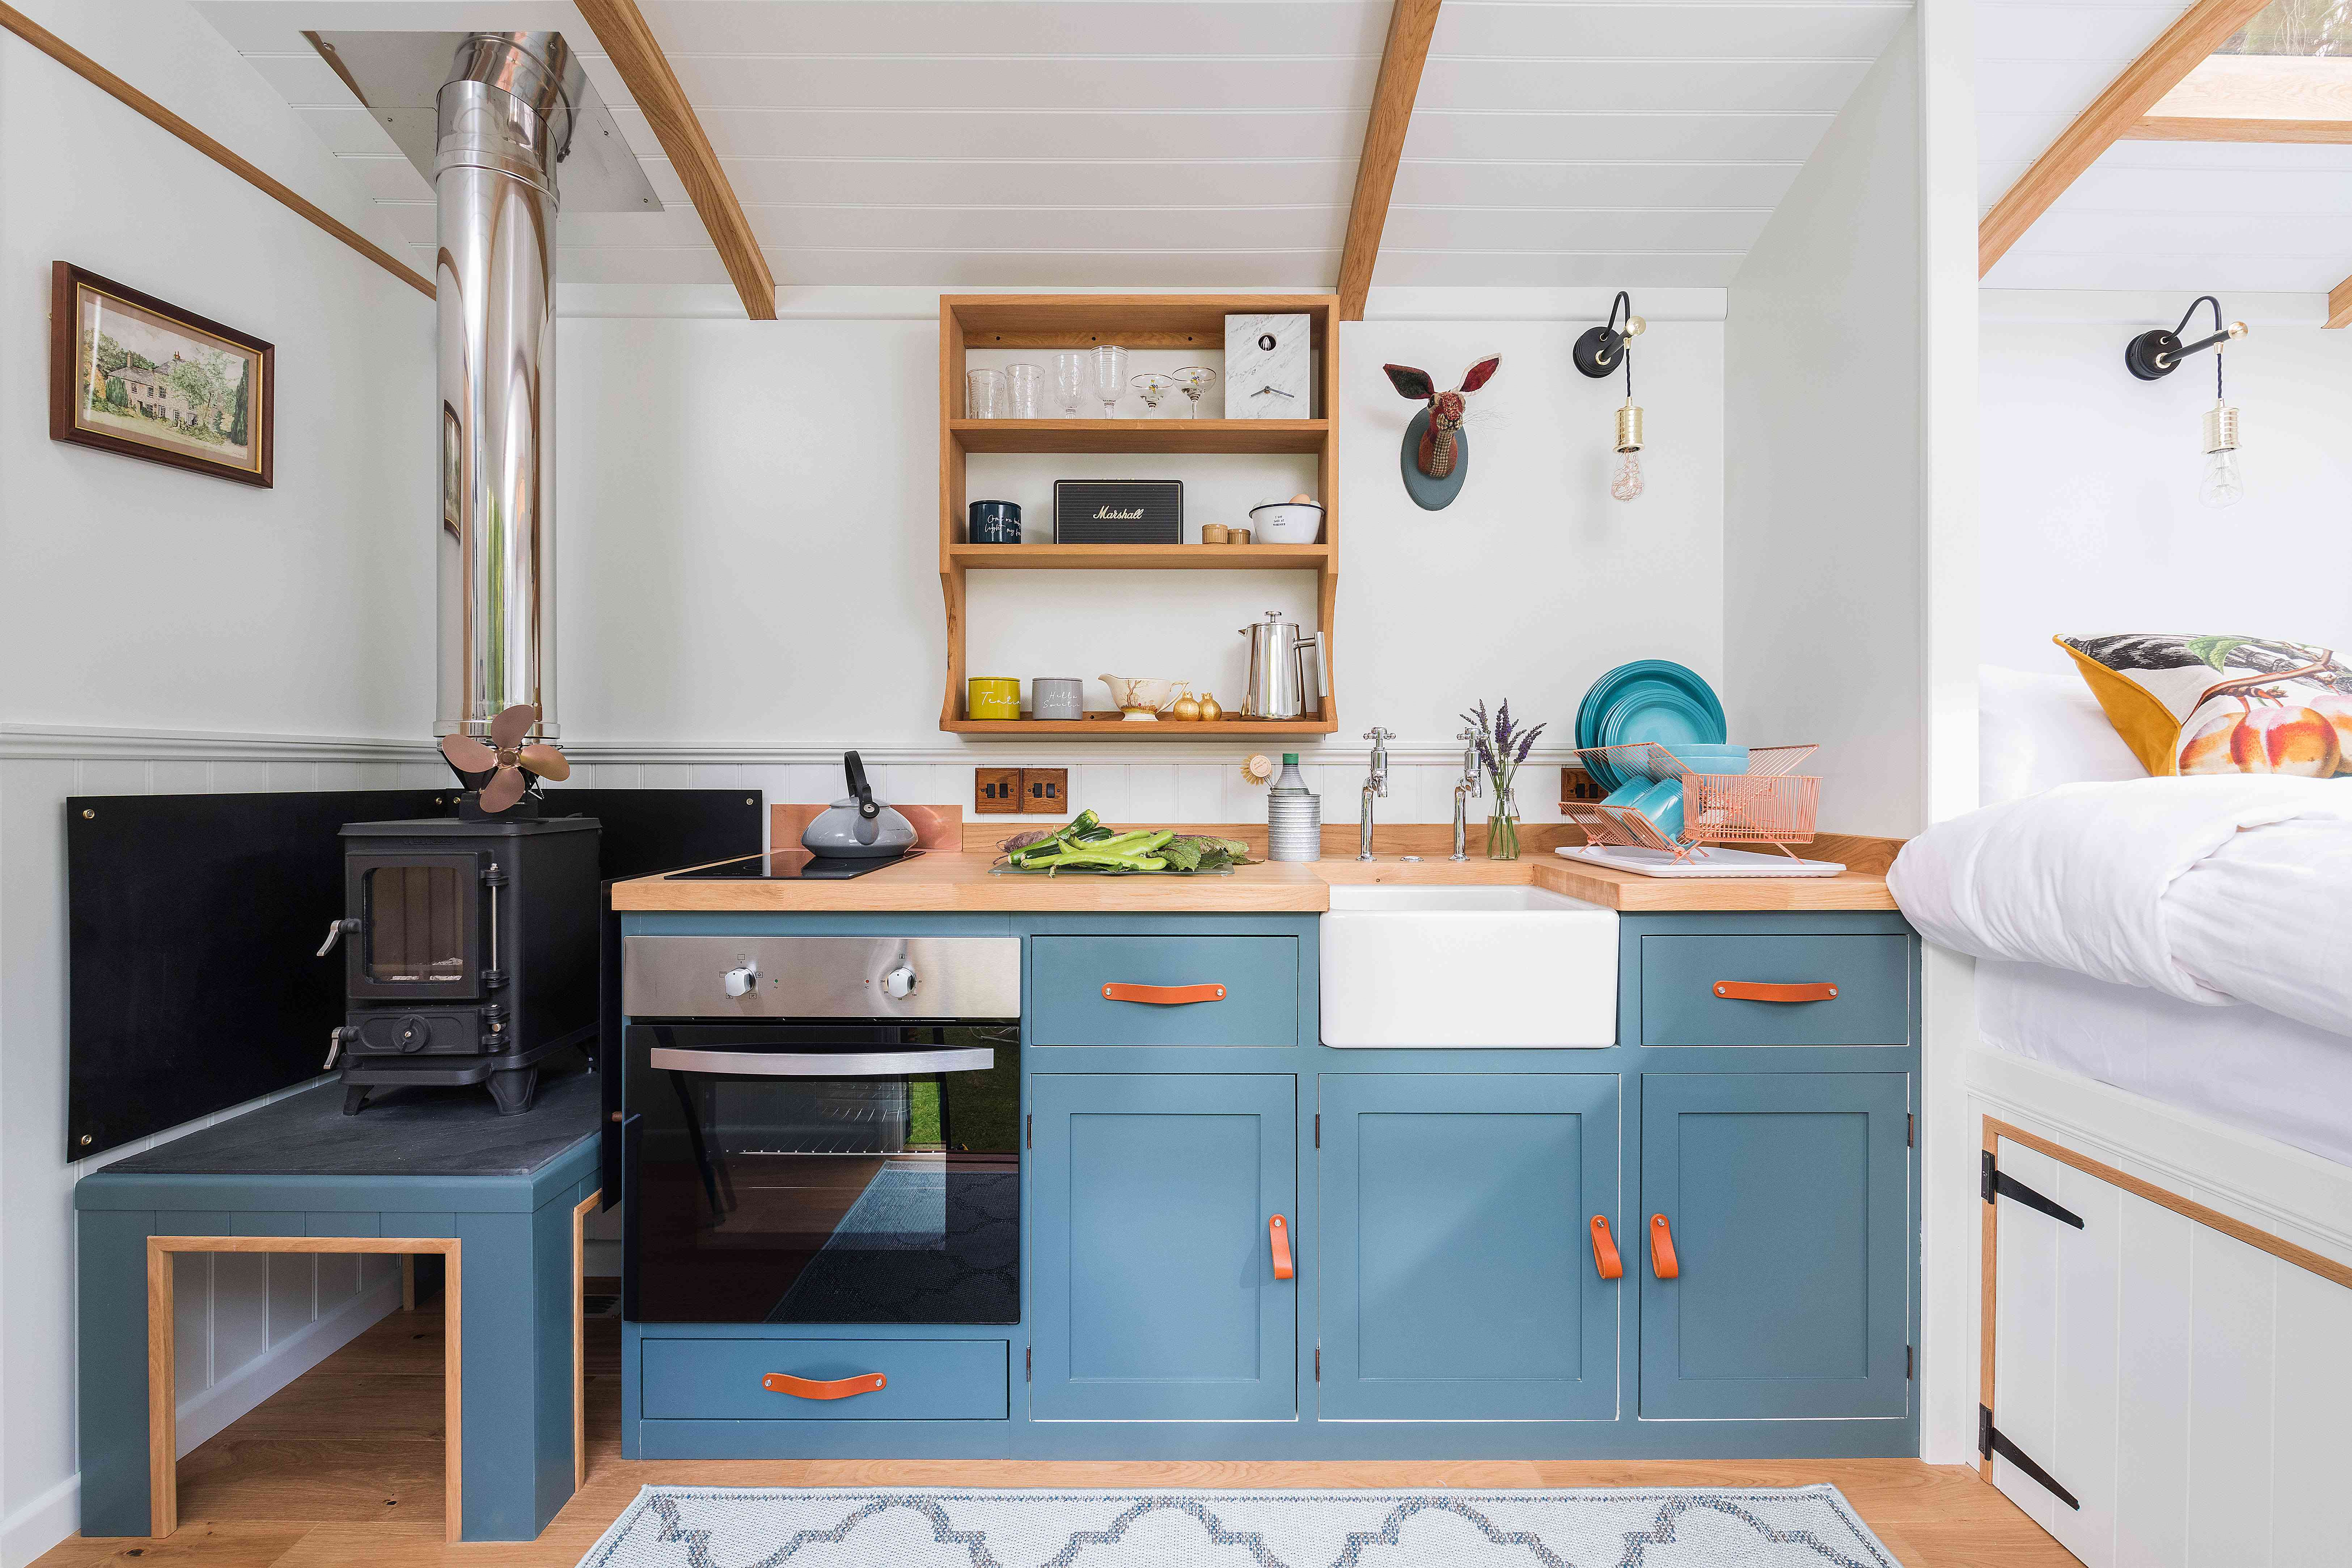 Tiny house kitchen with bright blue cabinets and leather hardware